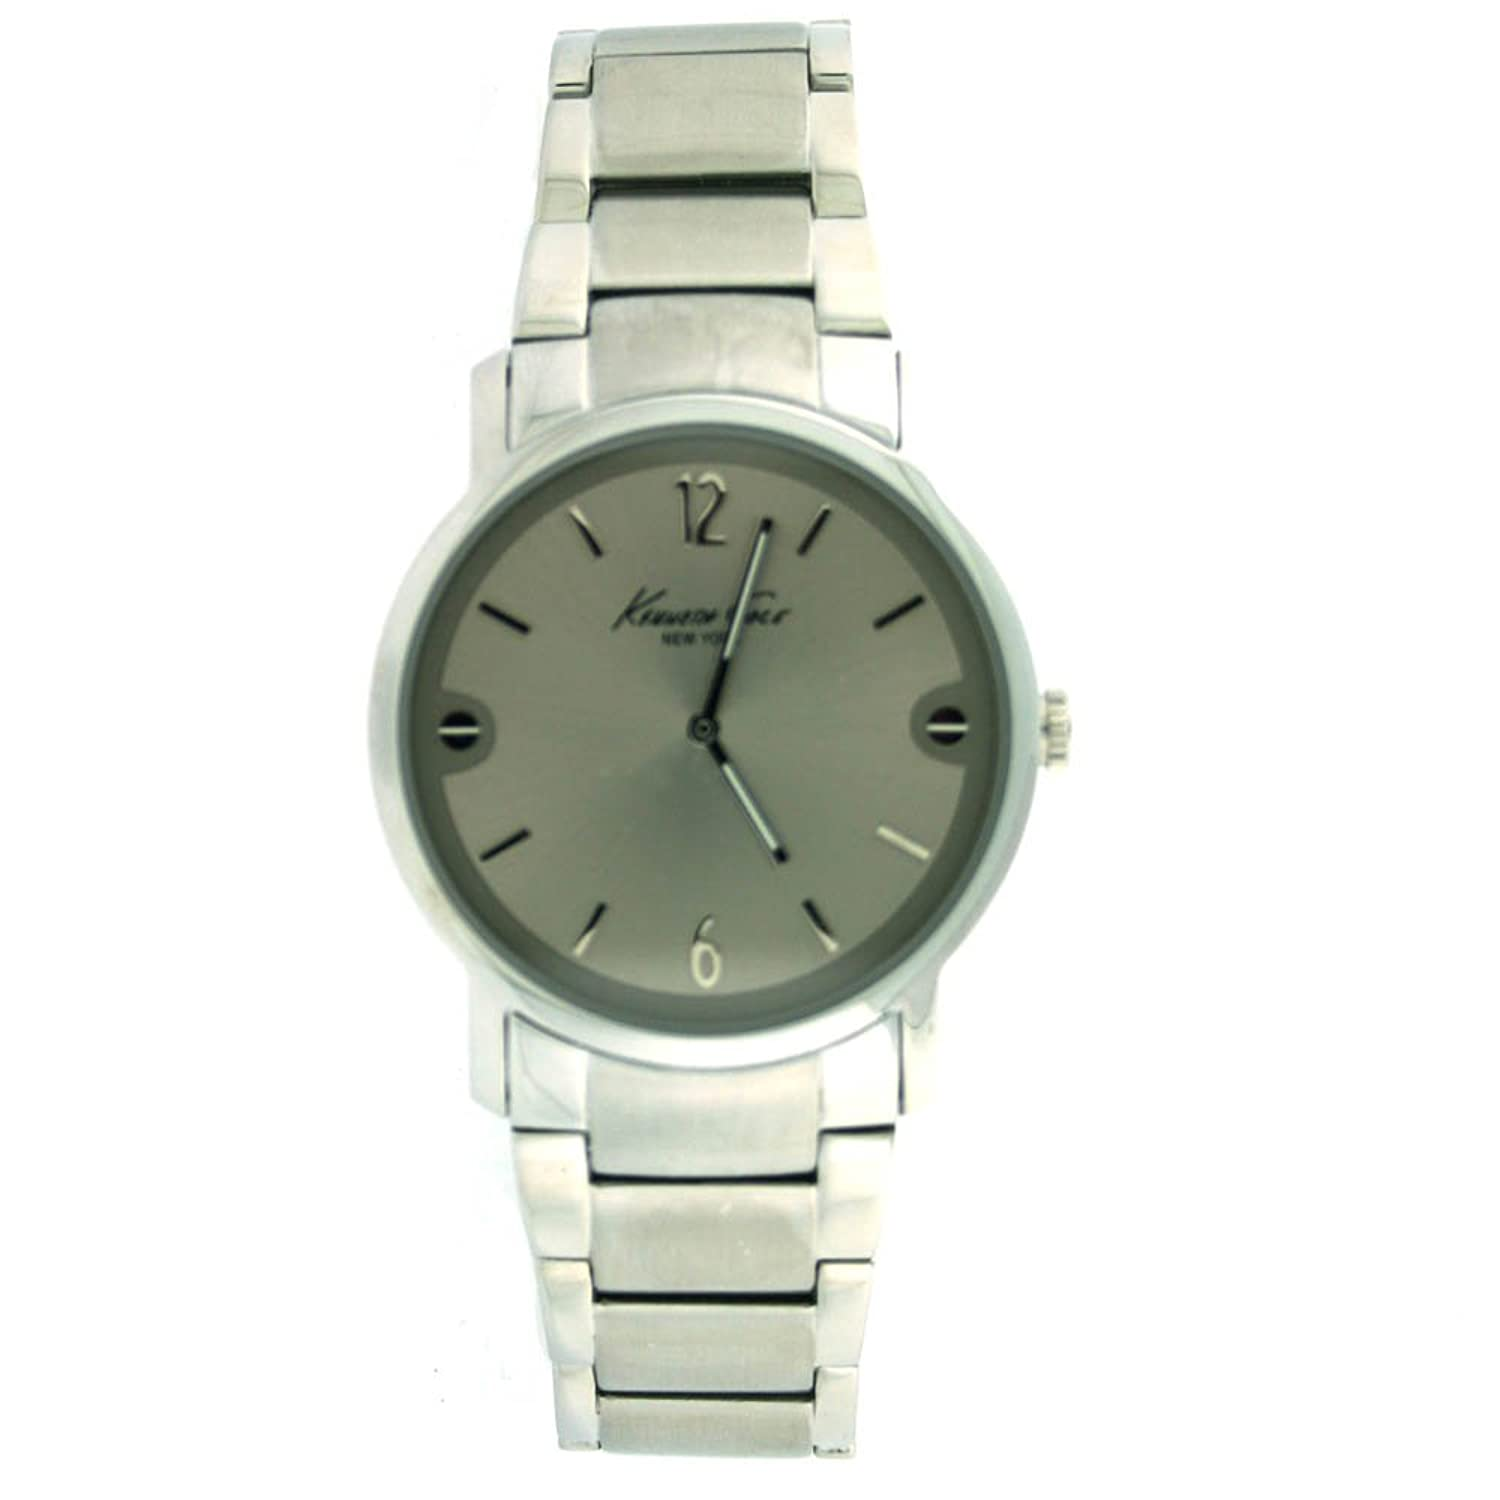 Kenneth Cole New York Bracelet Collection Silver Dial Men's watch #KC3928 kenneth cole reaction unisex rk1285 street collection white dial watch